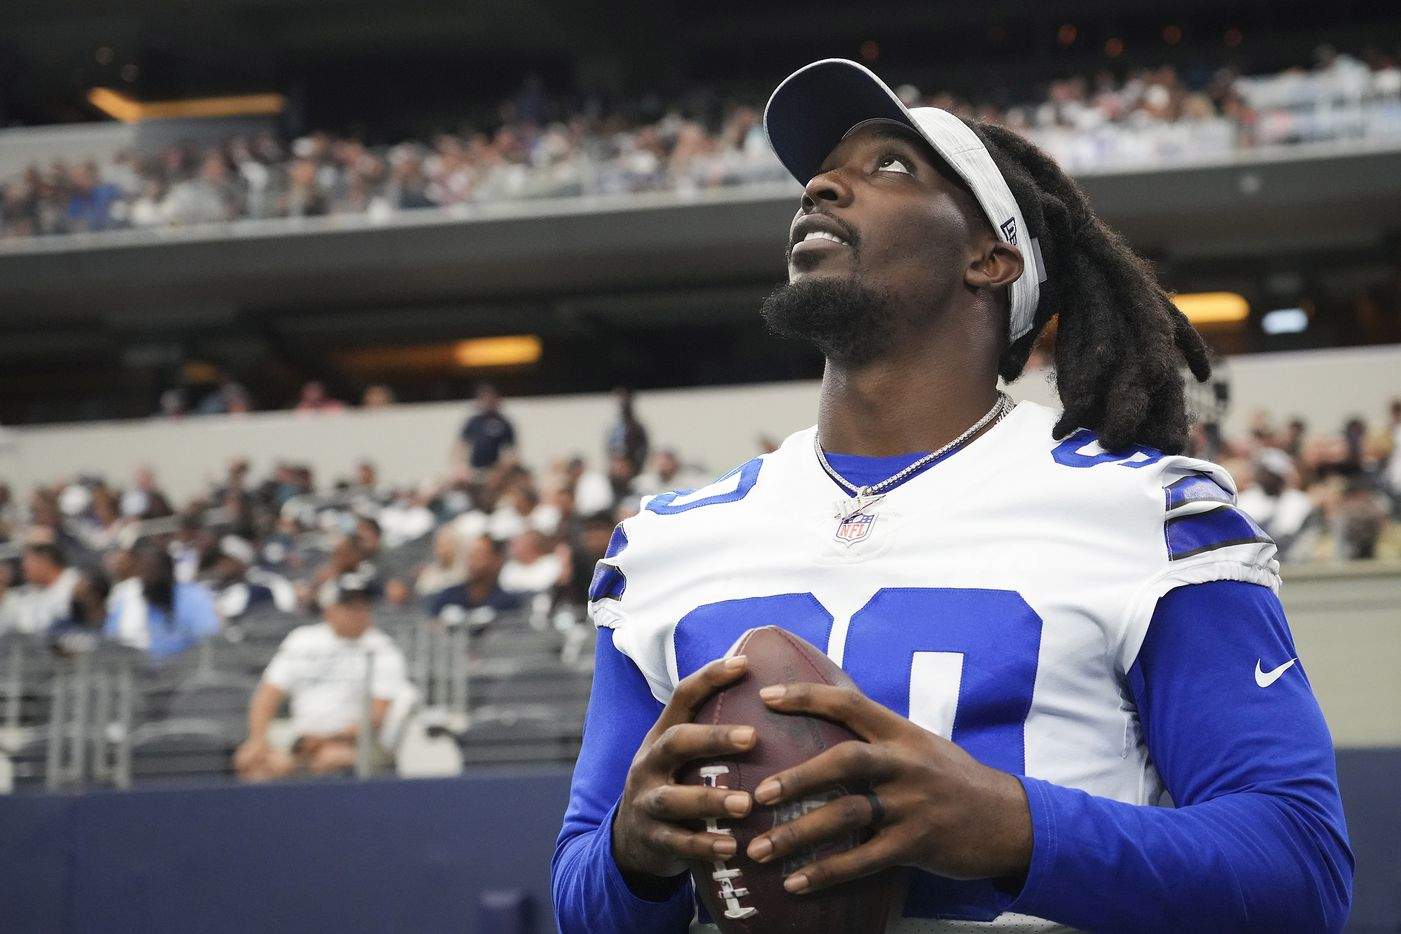 Dallas Cowboys defensive end DeMarcus Lawrence watches from the sidelines during the second half of a preseason NFL football game against the Jacksonville Jaguars at AT&T Stadium on Sunday, Aug. 29, 2021, in Arlington. (Smiley N. Pool/The Dallas Morning News)